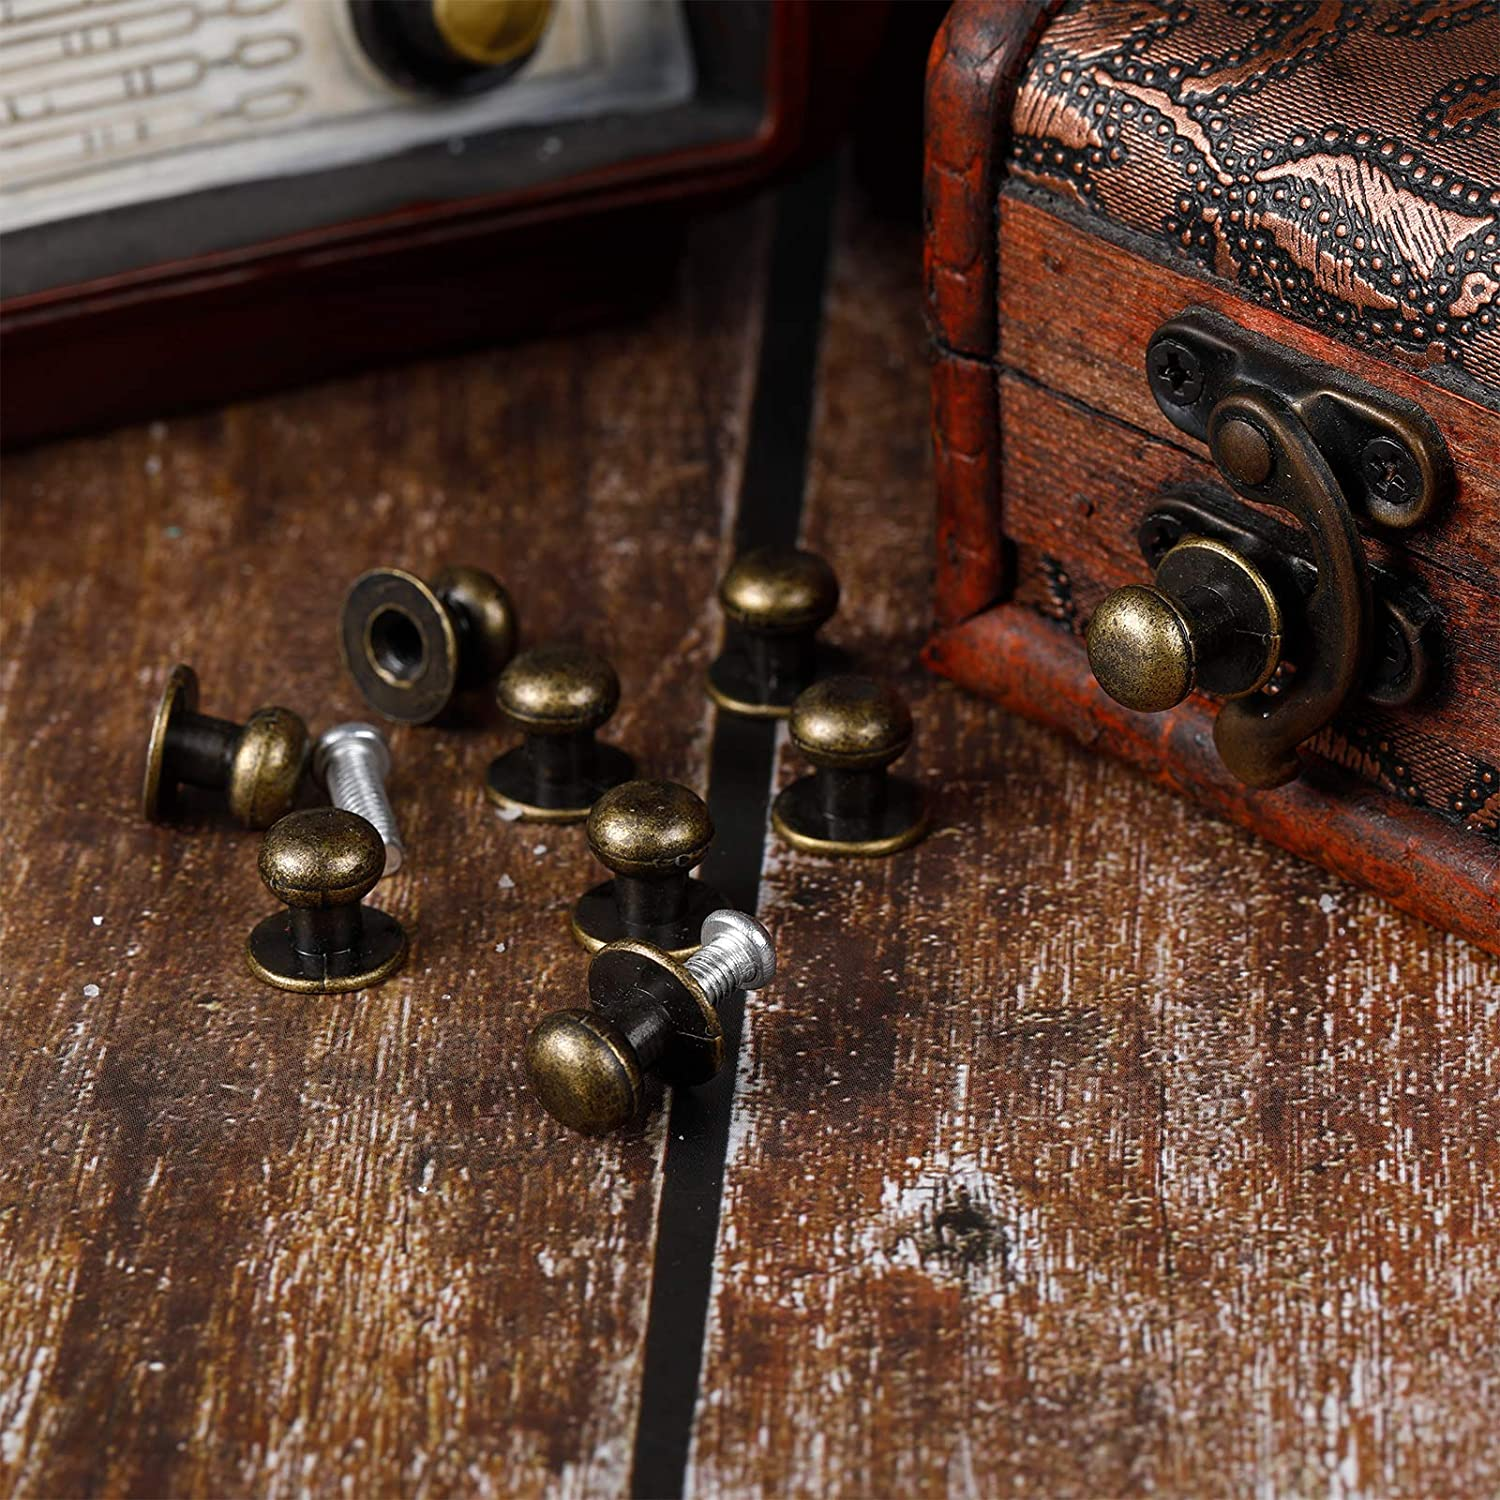 36 Pieces Mini Round Head Knobs Vintage Antique Bronze Drawer Metal Round Head Pull Handle Knobs with Screws for Wood Case Drawer Cabinets